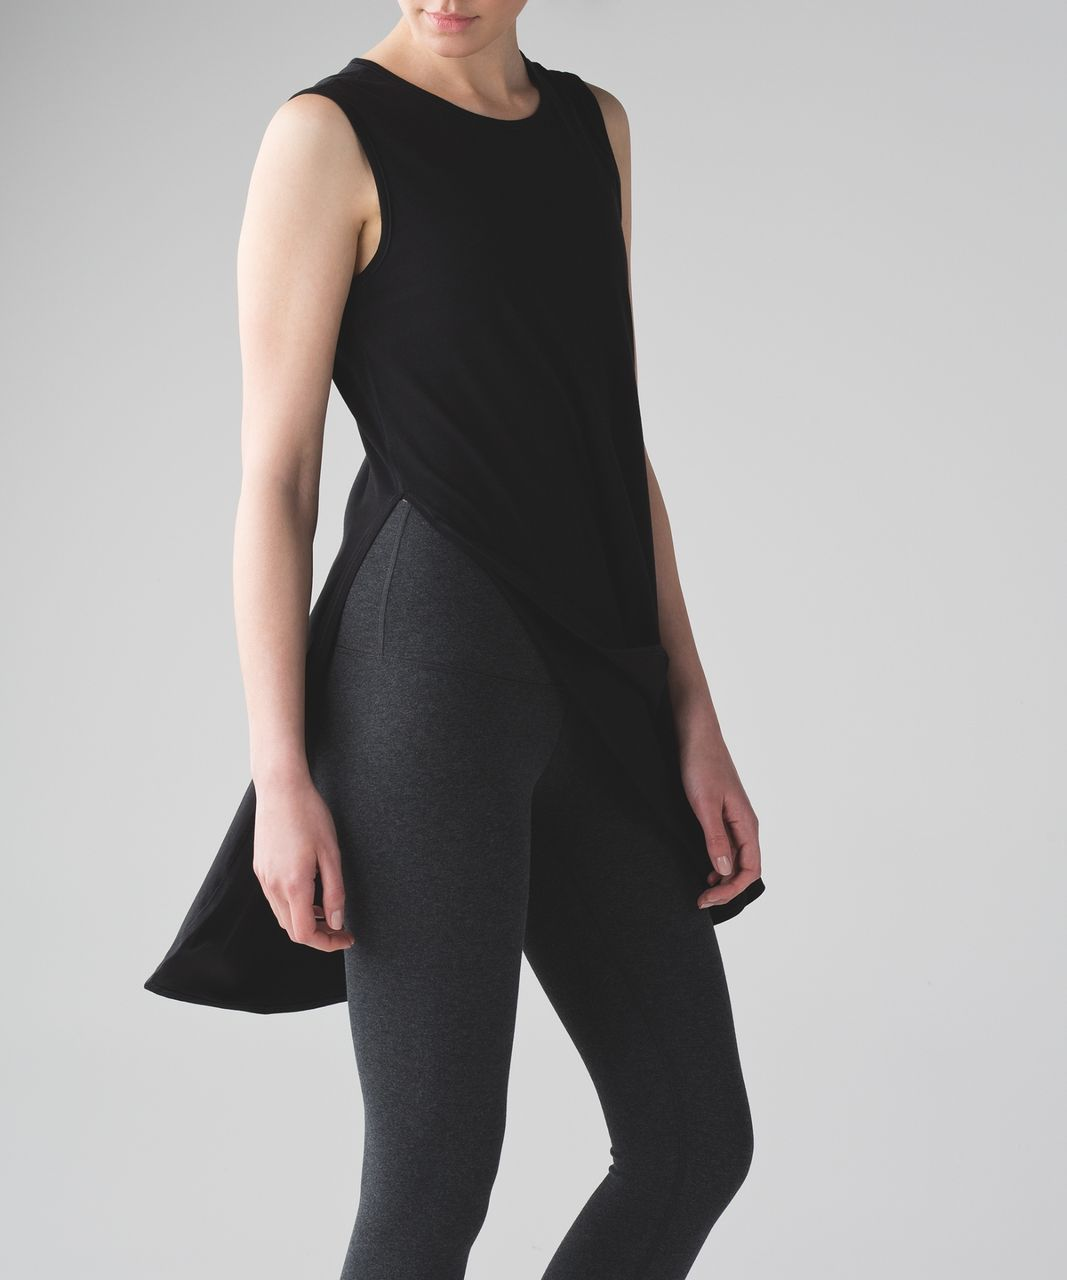 Lululemon Breeze By Tunic - Black